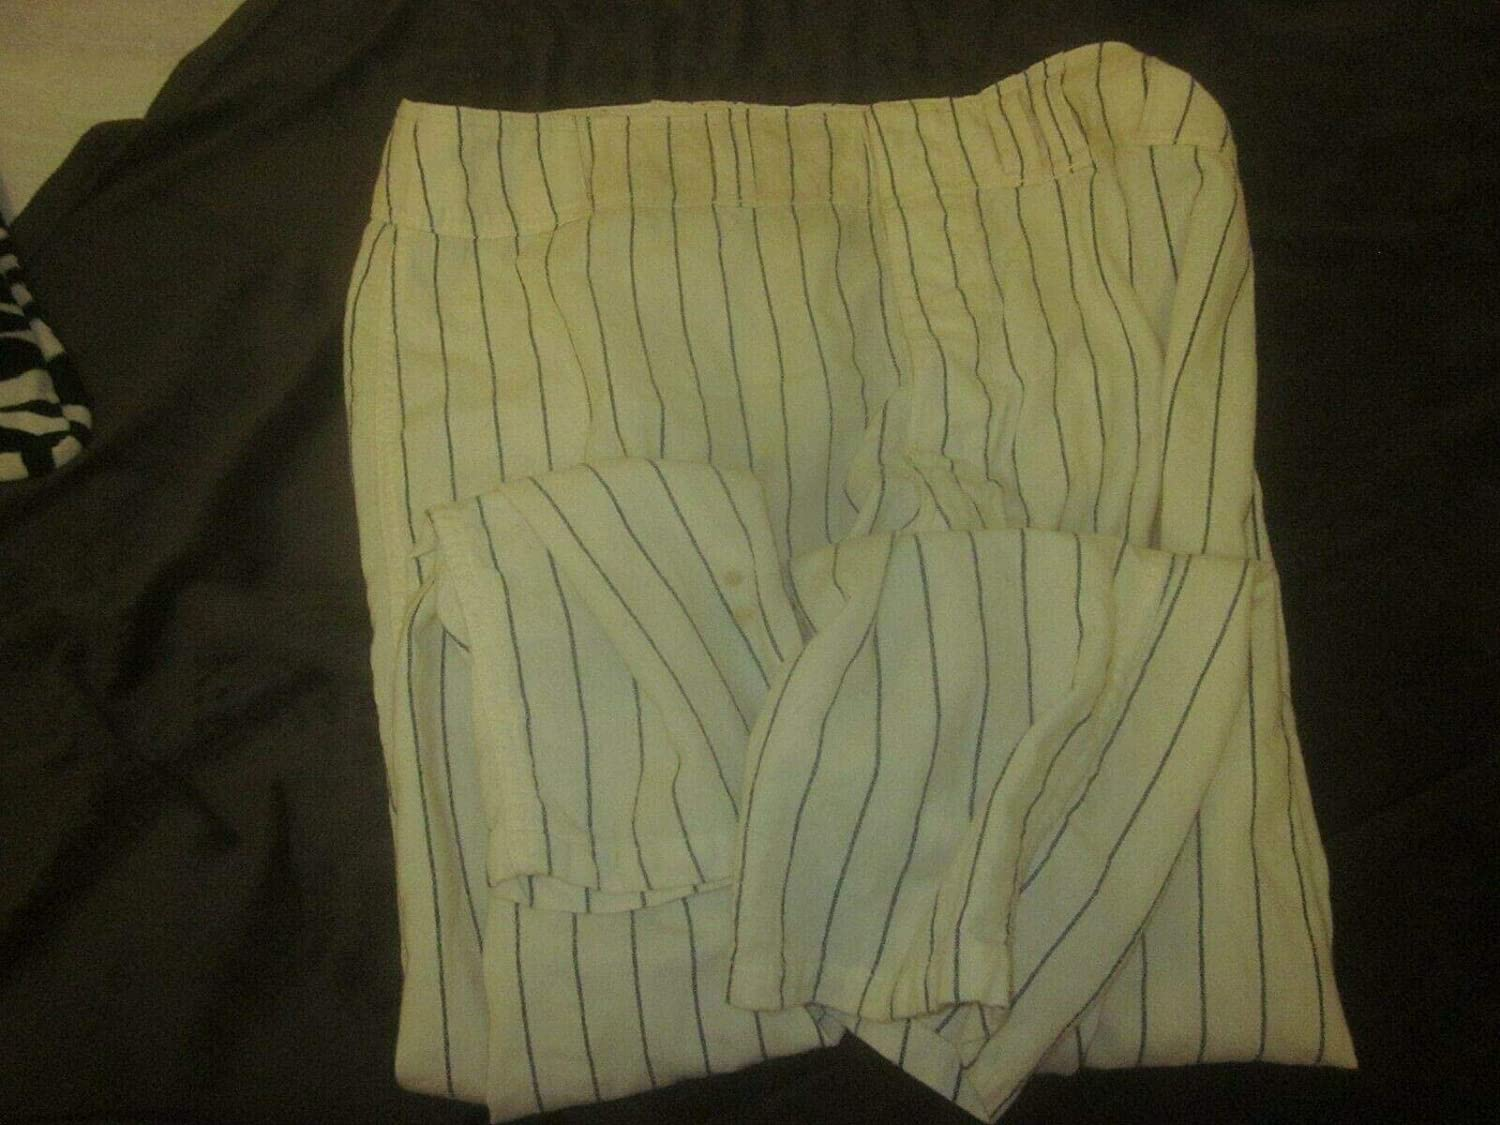 1961 Washington Senators Game Used Home Pinstripe Pants - Game Used MLB Pants